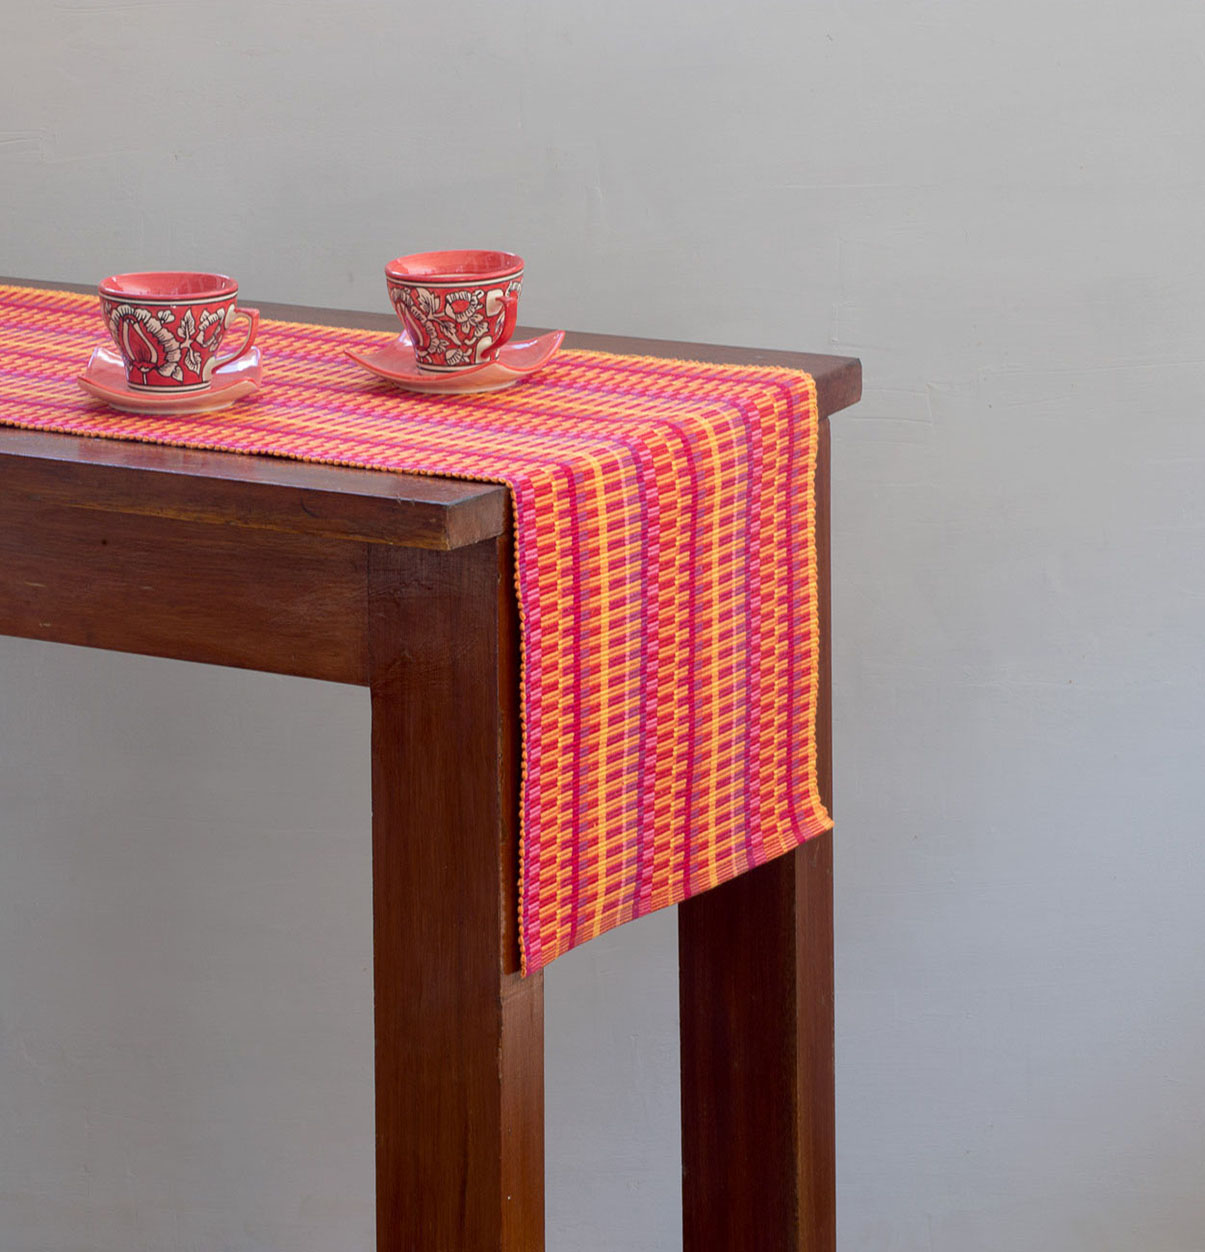 handwoven stripes cotton table runner red yellow 14 x 90 thoppia